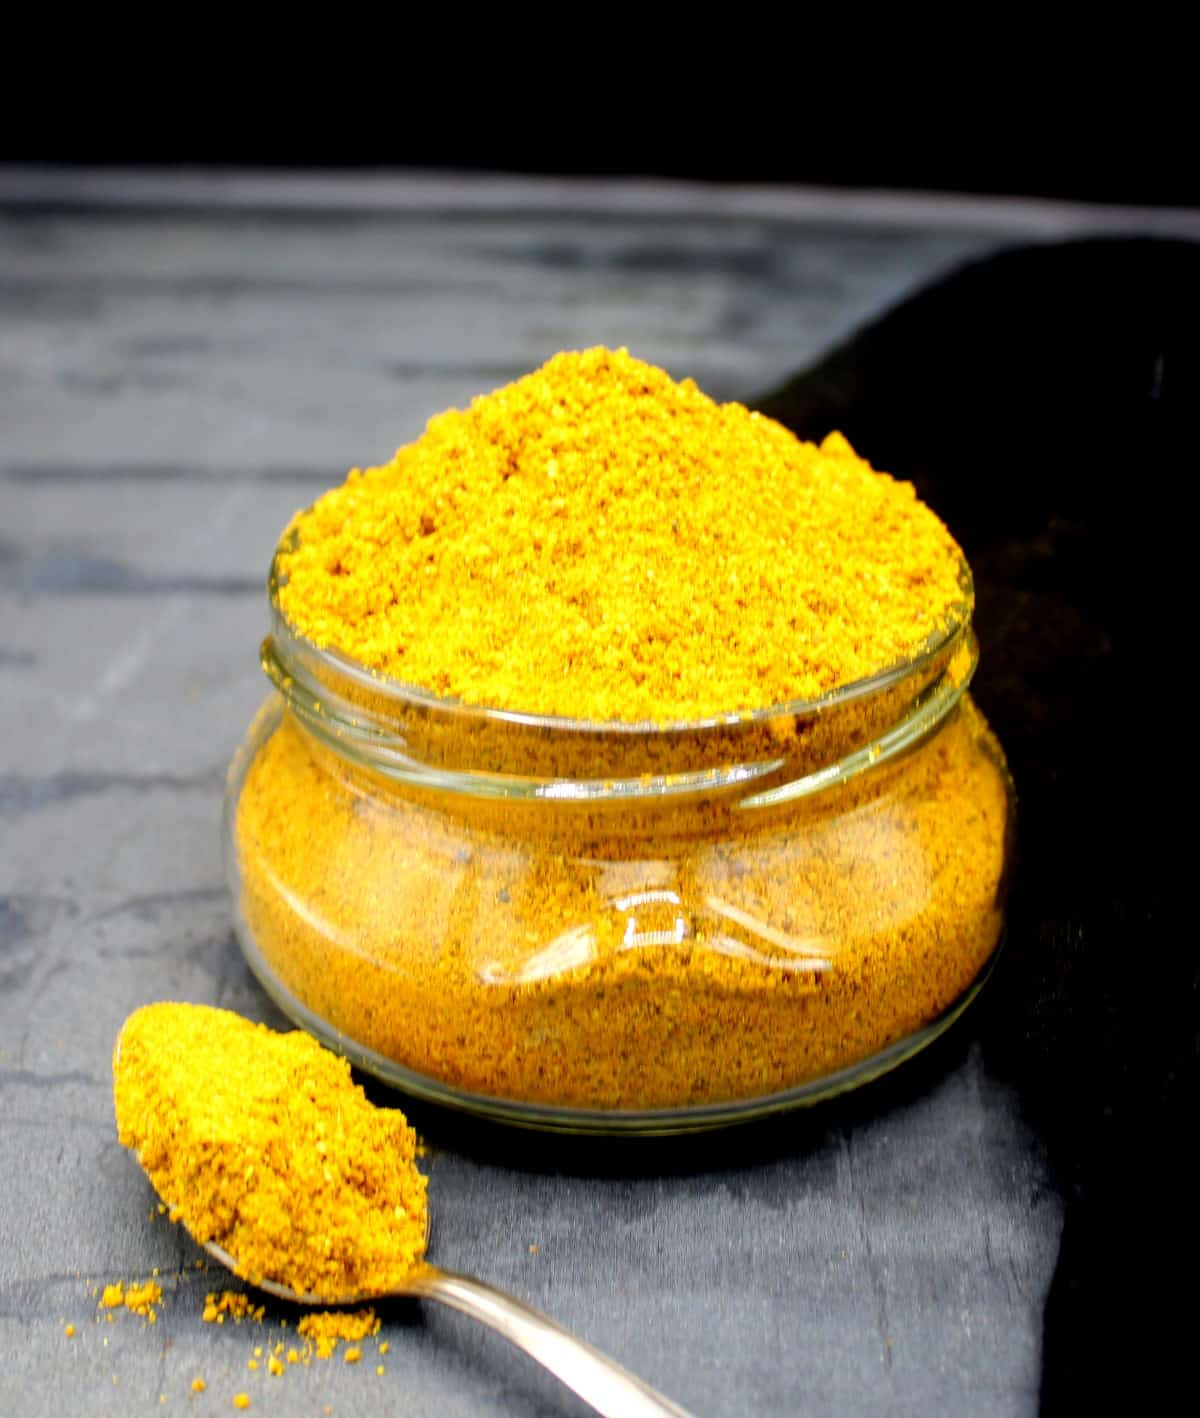 Photo of a glass jar of curry powder with a spoon next to it.